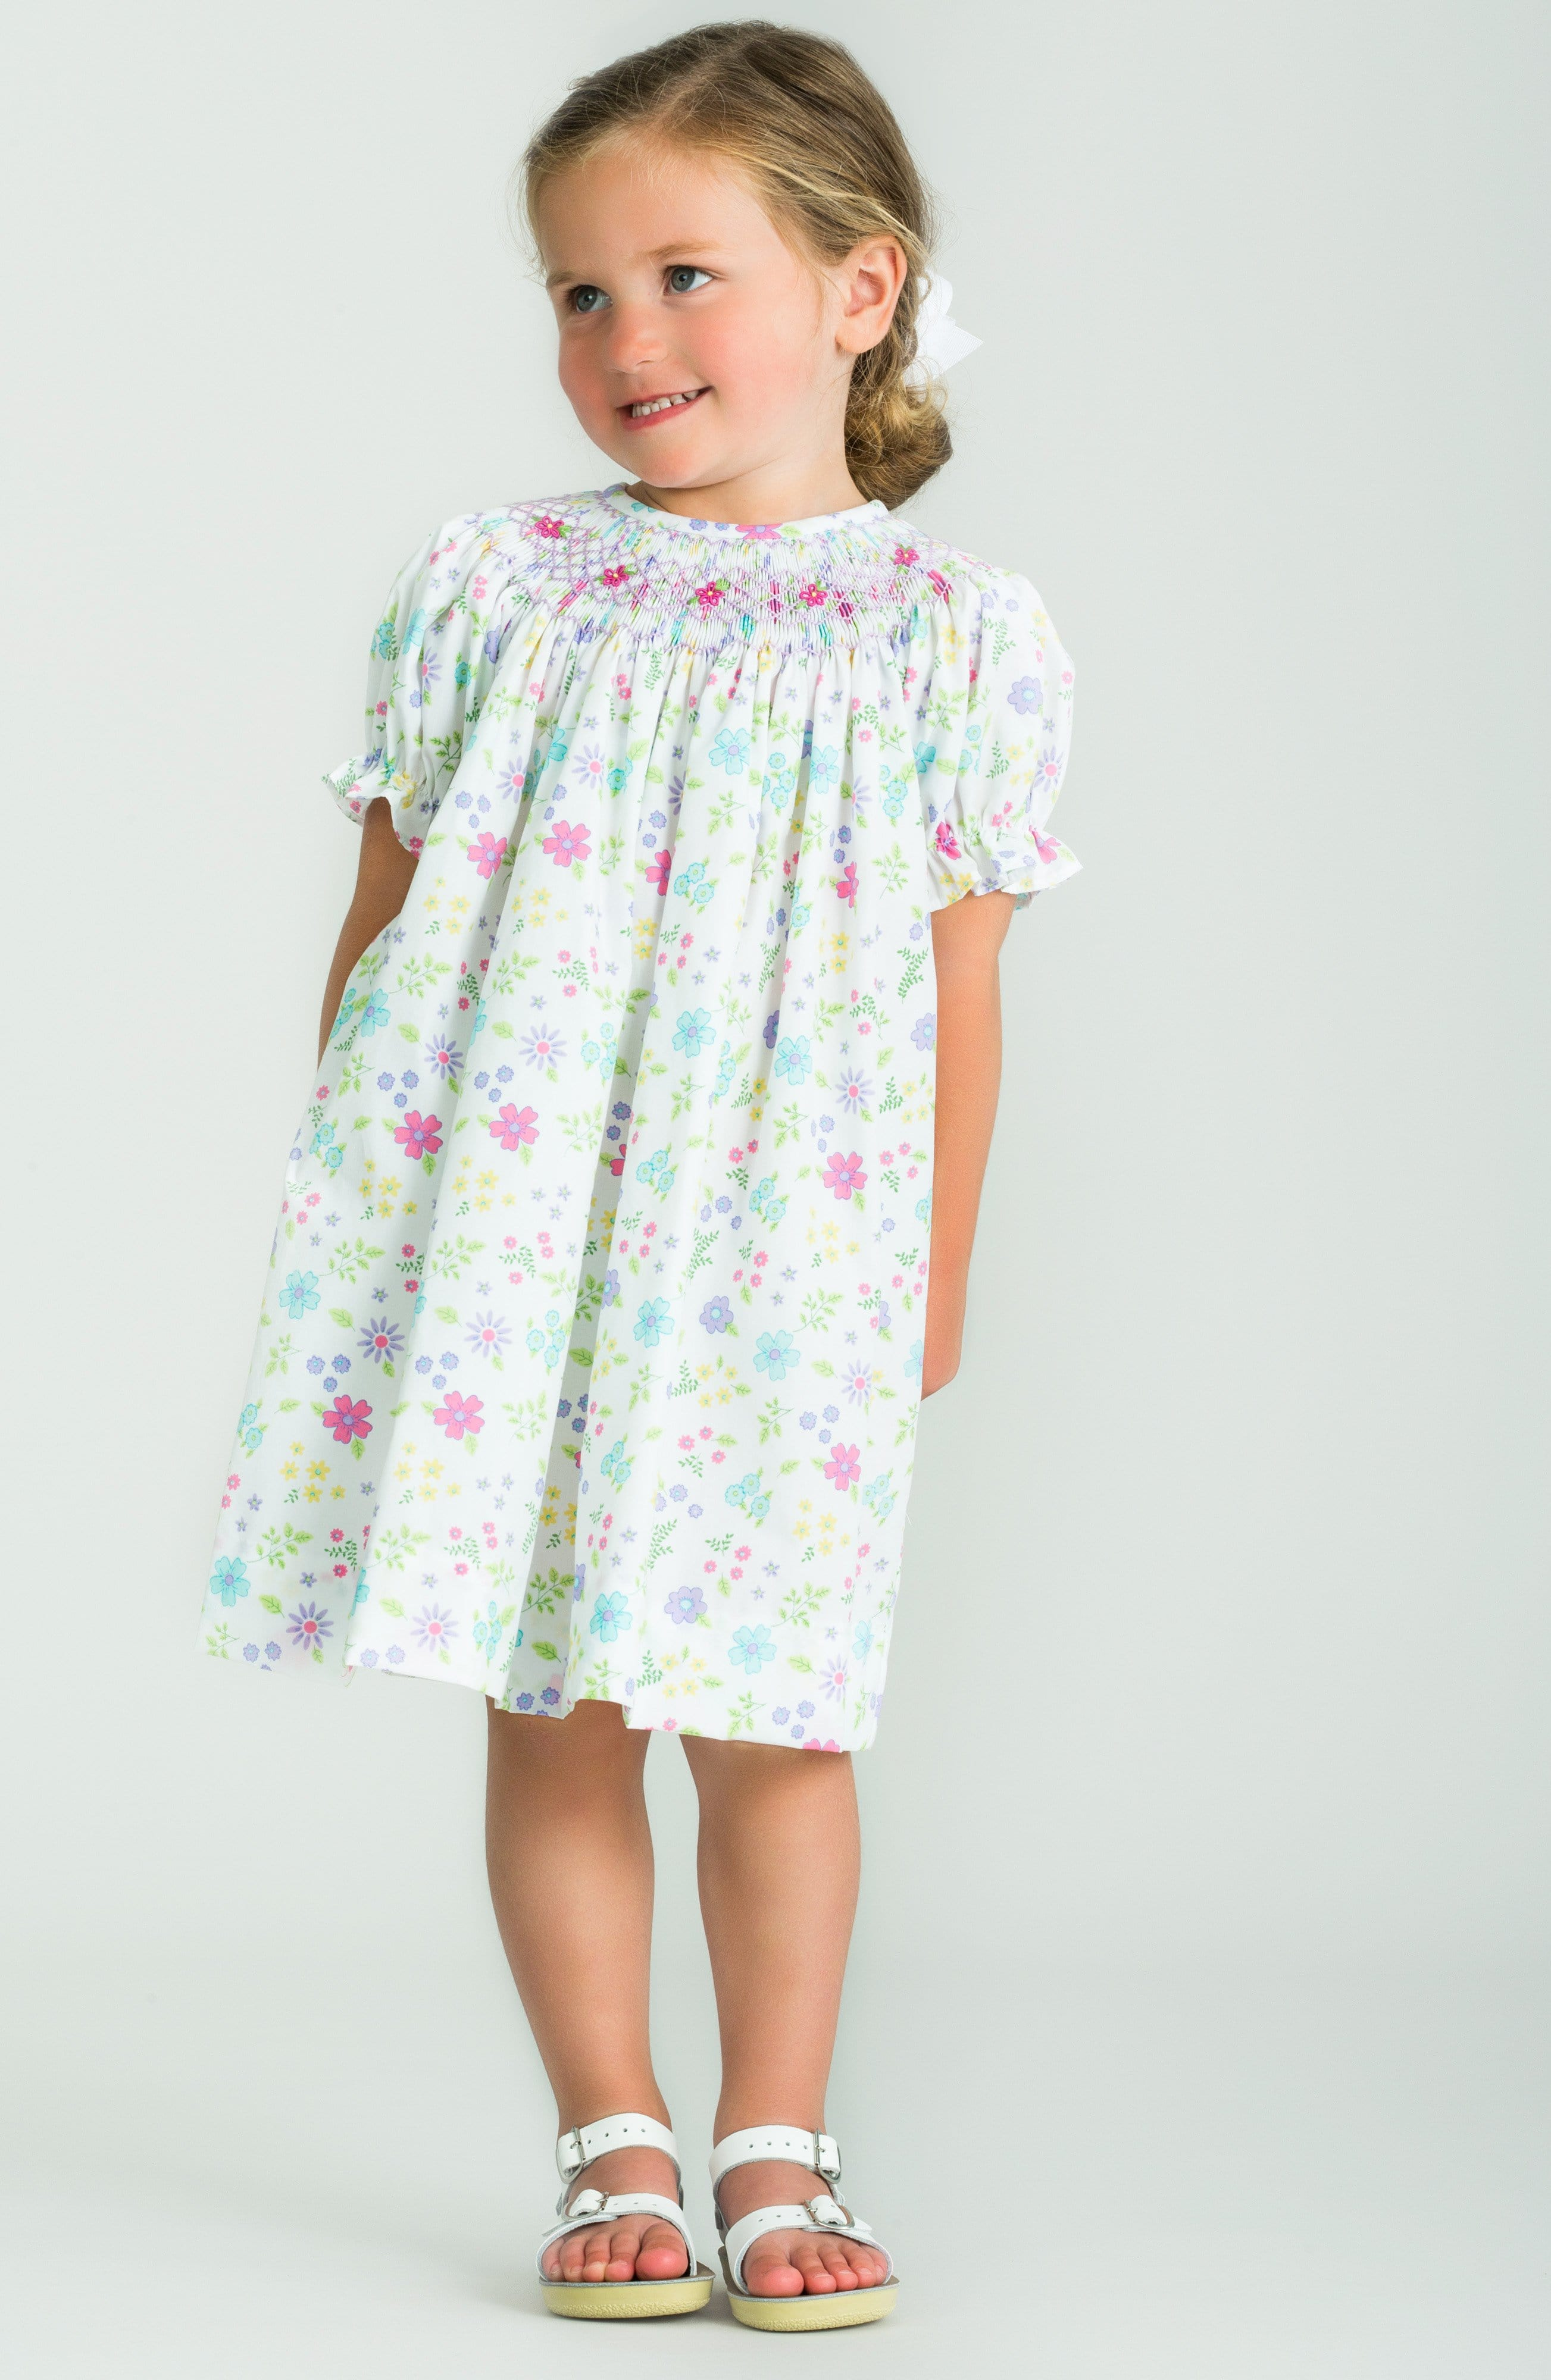 Classic floral Bishop Dress, traditional children's clothing